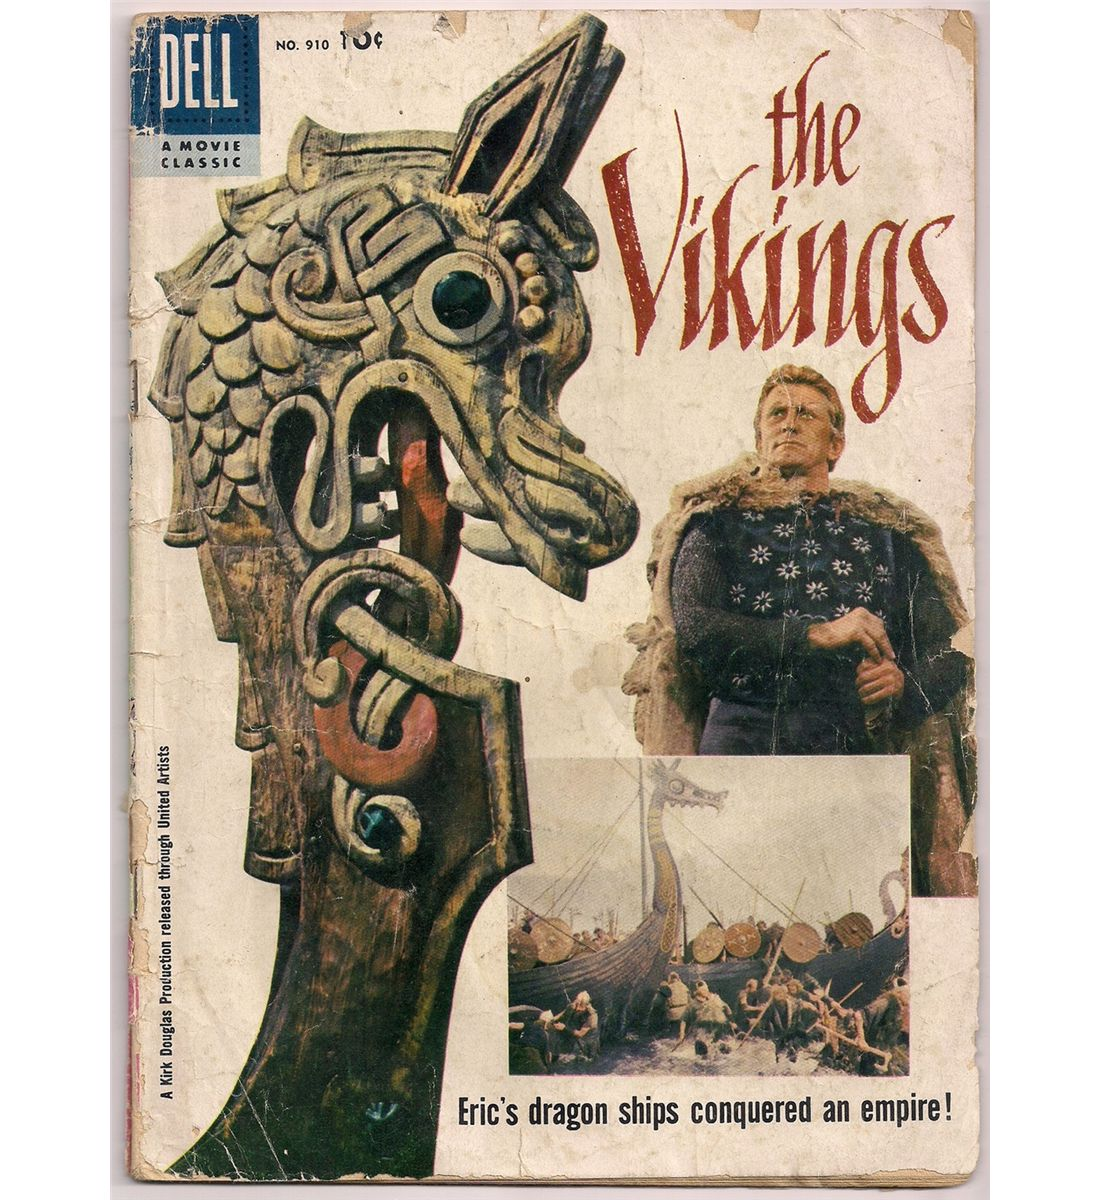 vikings research paper The vikings barged onto the world stage at the end of the eighth century, taking to the seas over the course of 300 years from modern-day scandinavia on innovative vessels research the thing and reflect on what you see in the series.